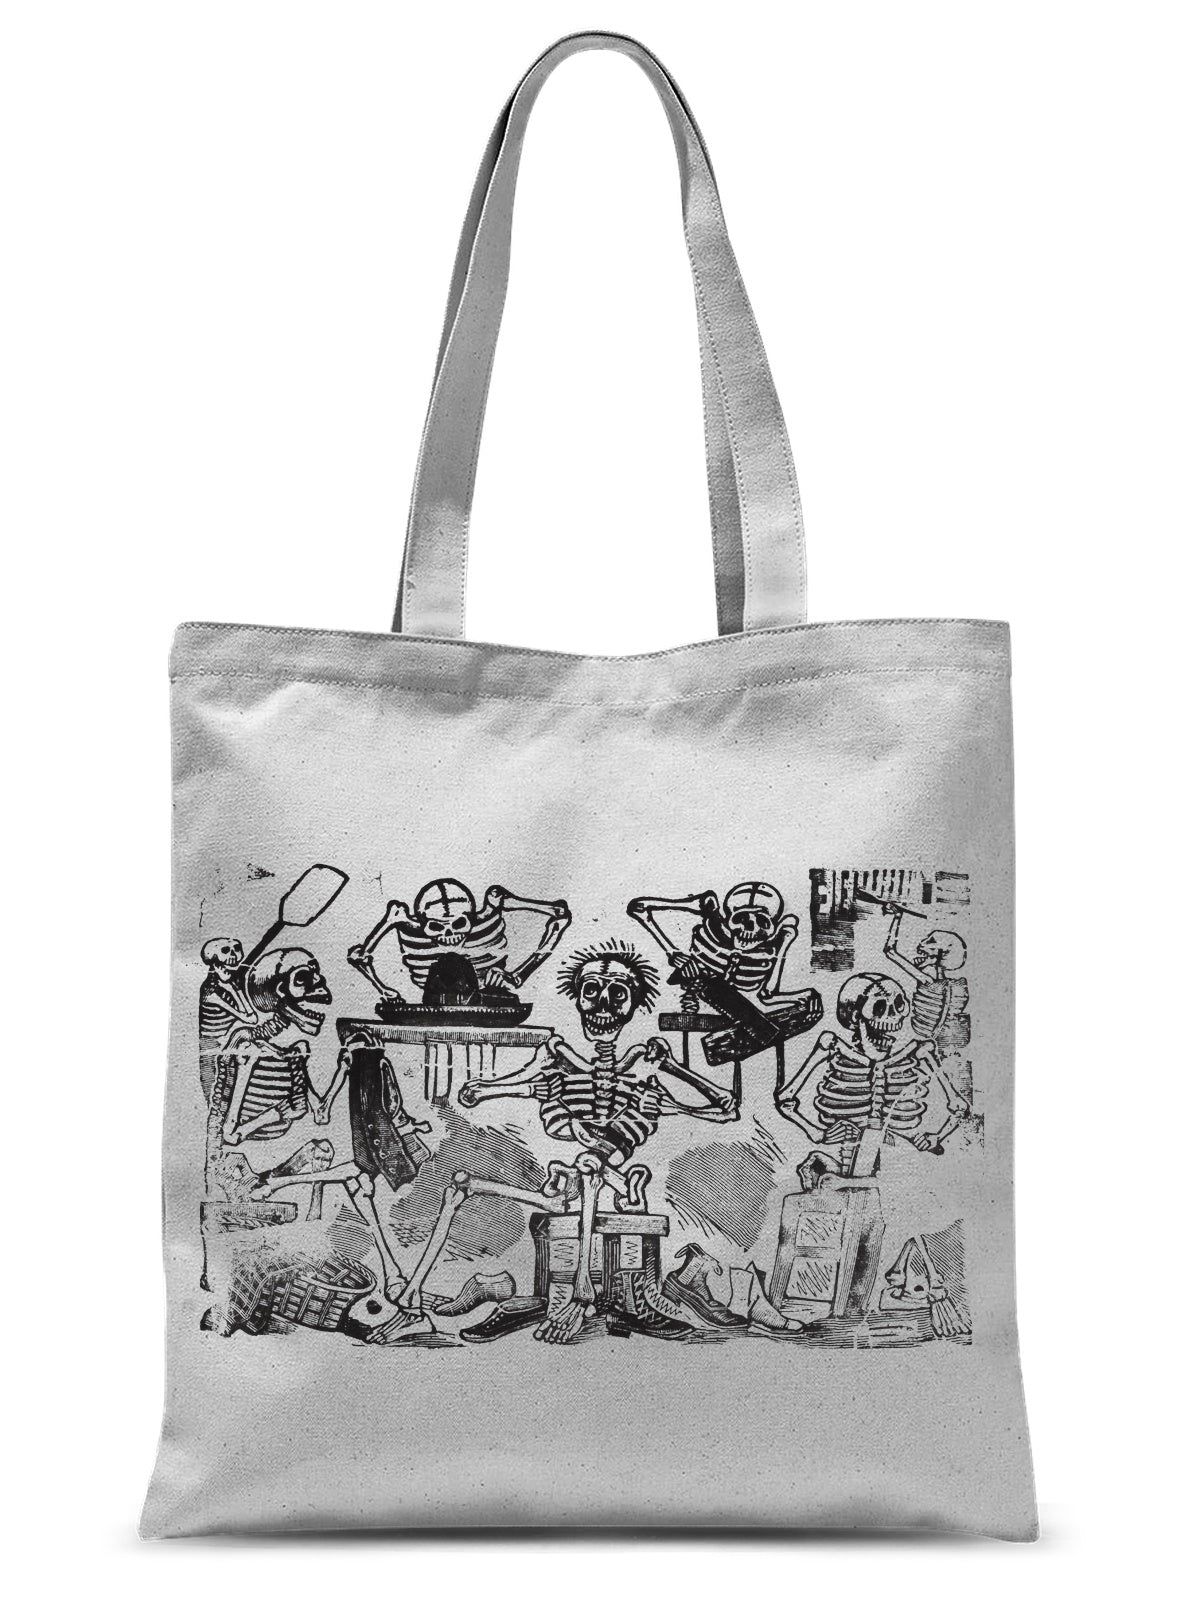 Skeletons as Artisans by José Guadalupe Posada, c. 1890–1910 - Tote Bag